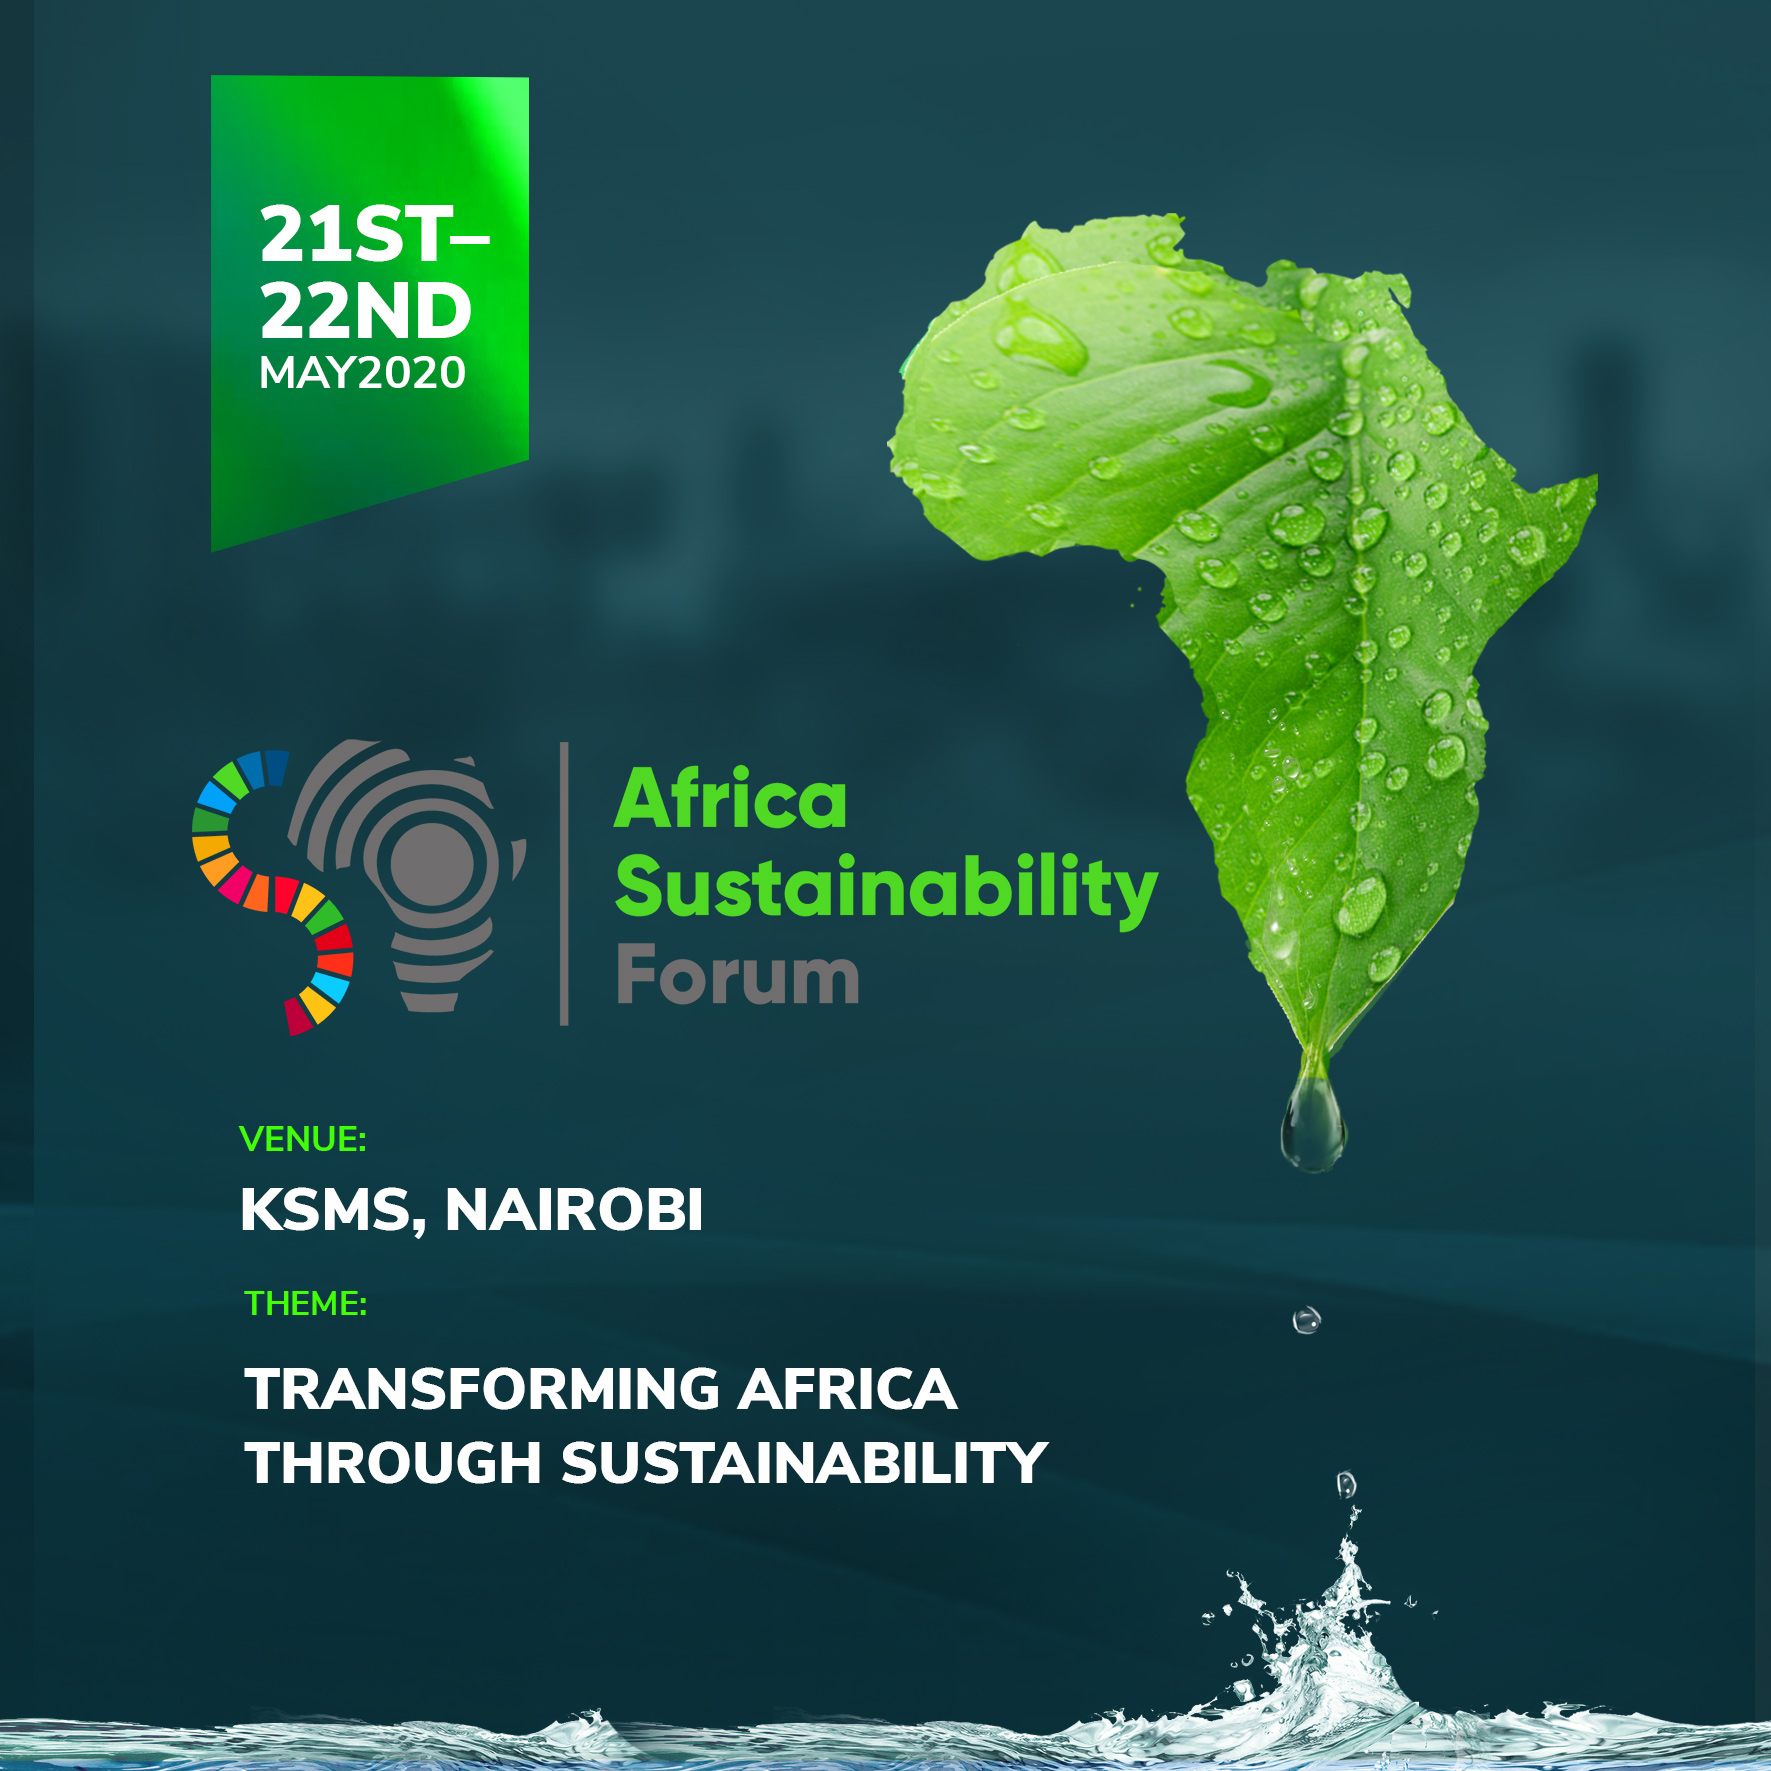 Africa Sustainability Forum